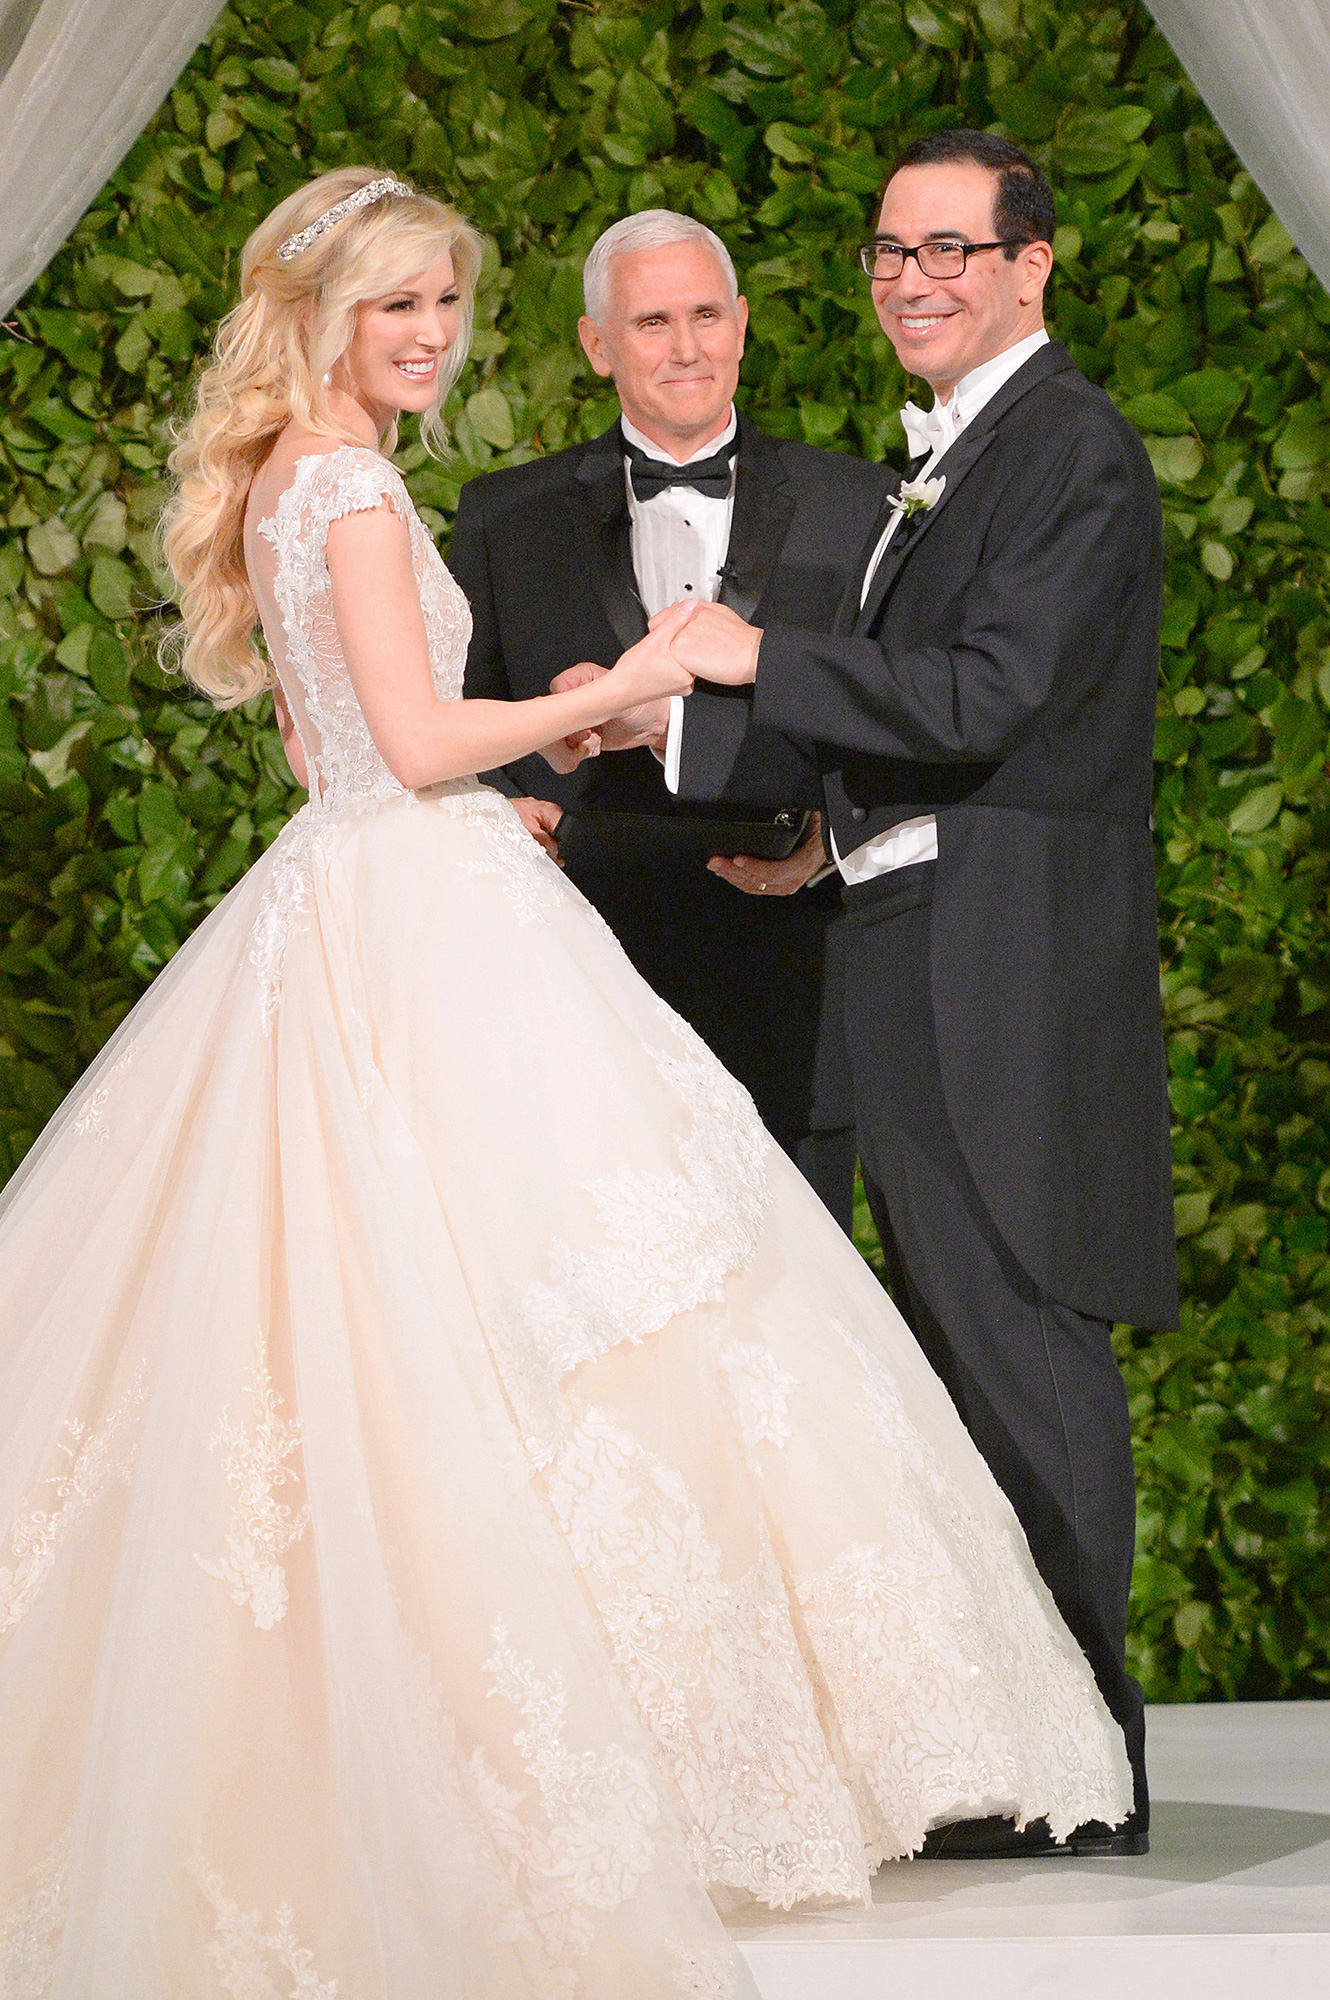 Louise Linton, Mike Pence and Steven Mnuchin